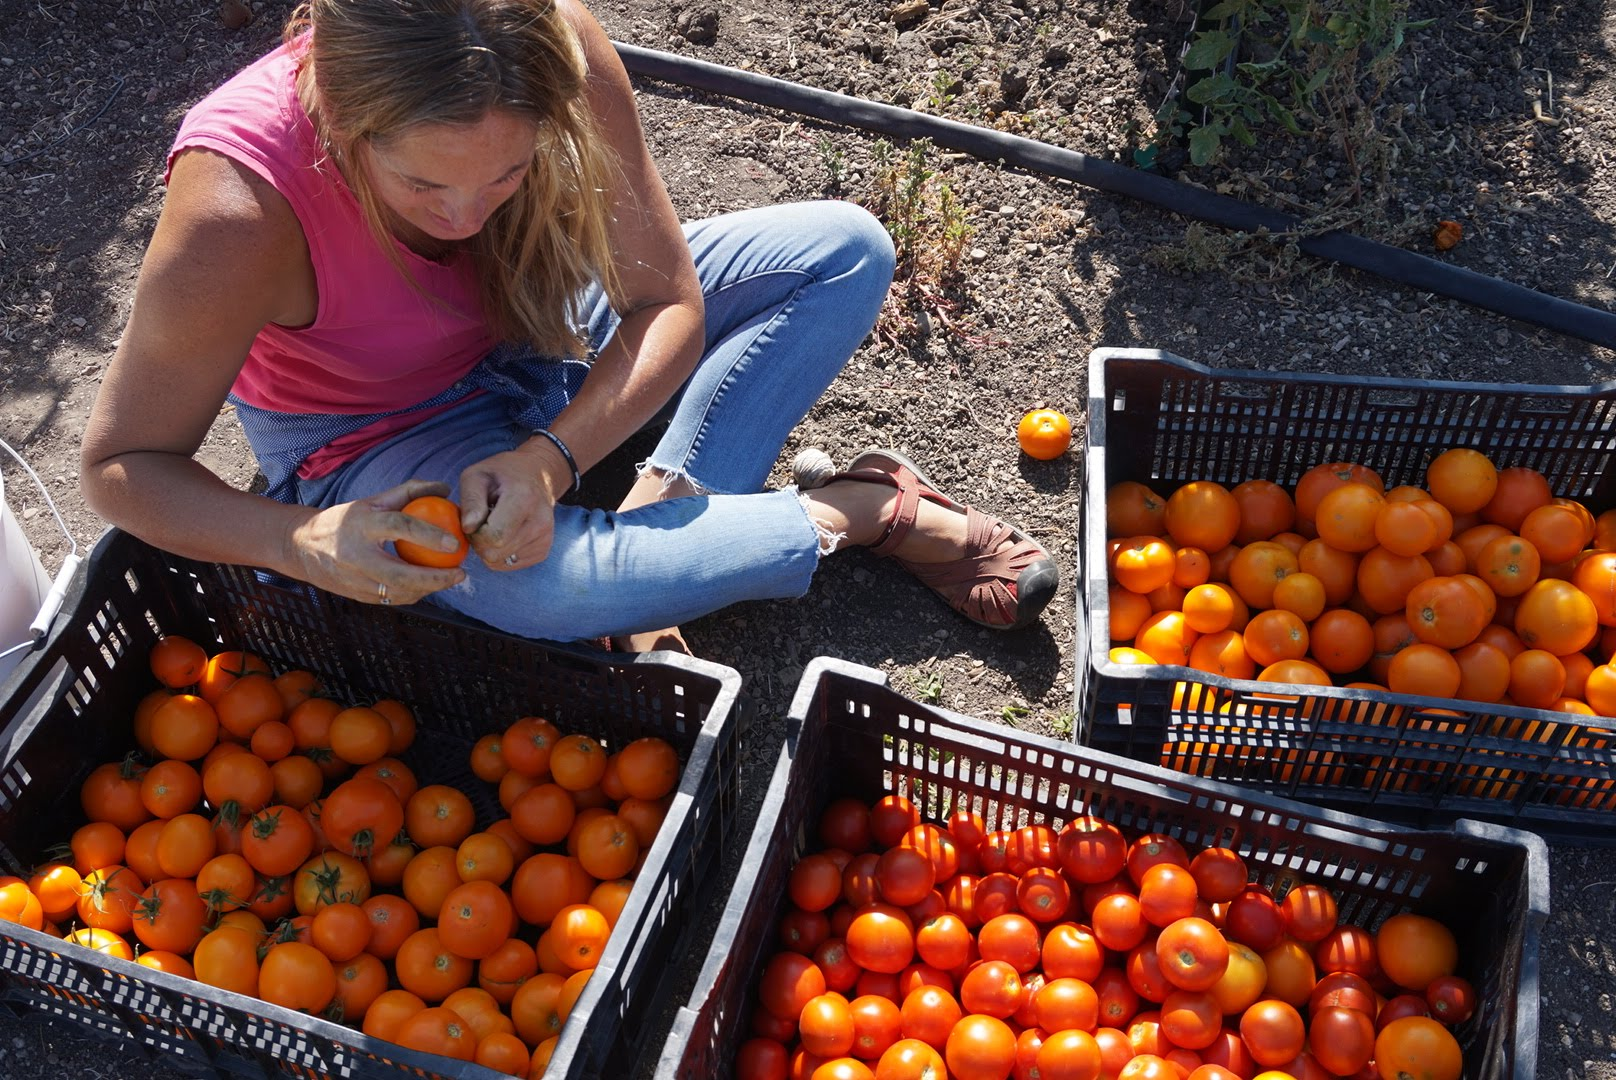 A person in jeans and a pink tank top sits in the dirt with crates of red and orange tomatoes surrounding her. Gathering delicious farm-to-fork food to share with the tight-knit local community.